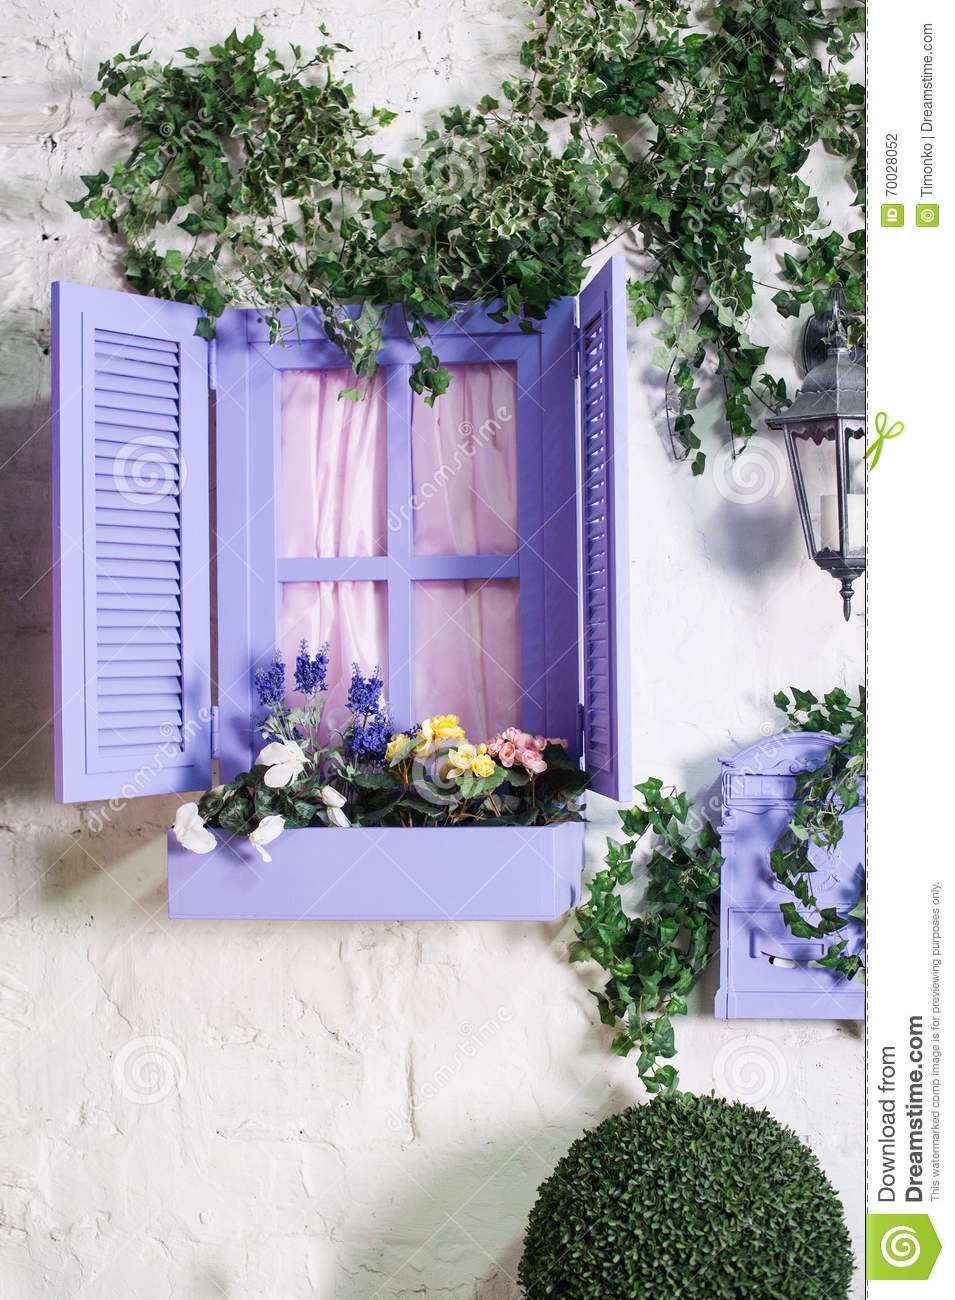 Pretty Small Purple Window And Box With Flowers In An Old House